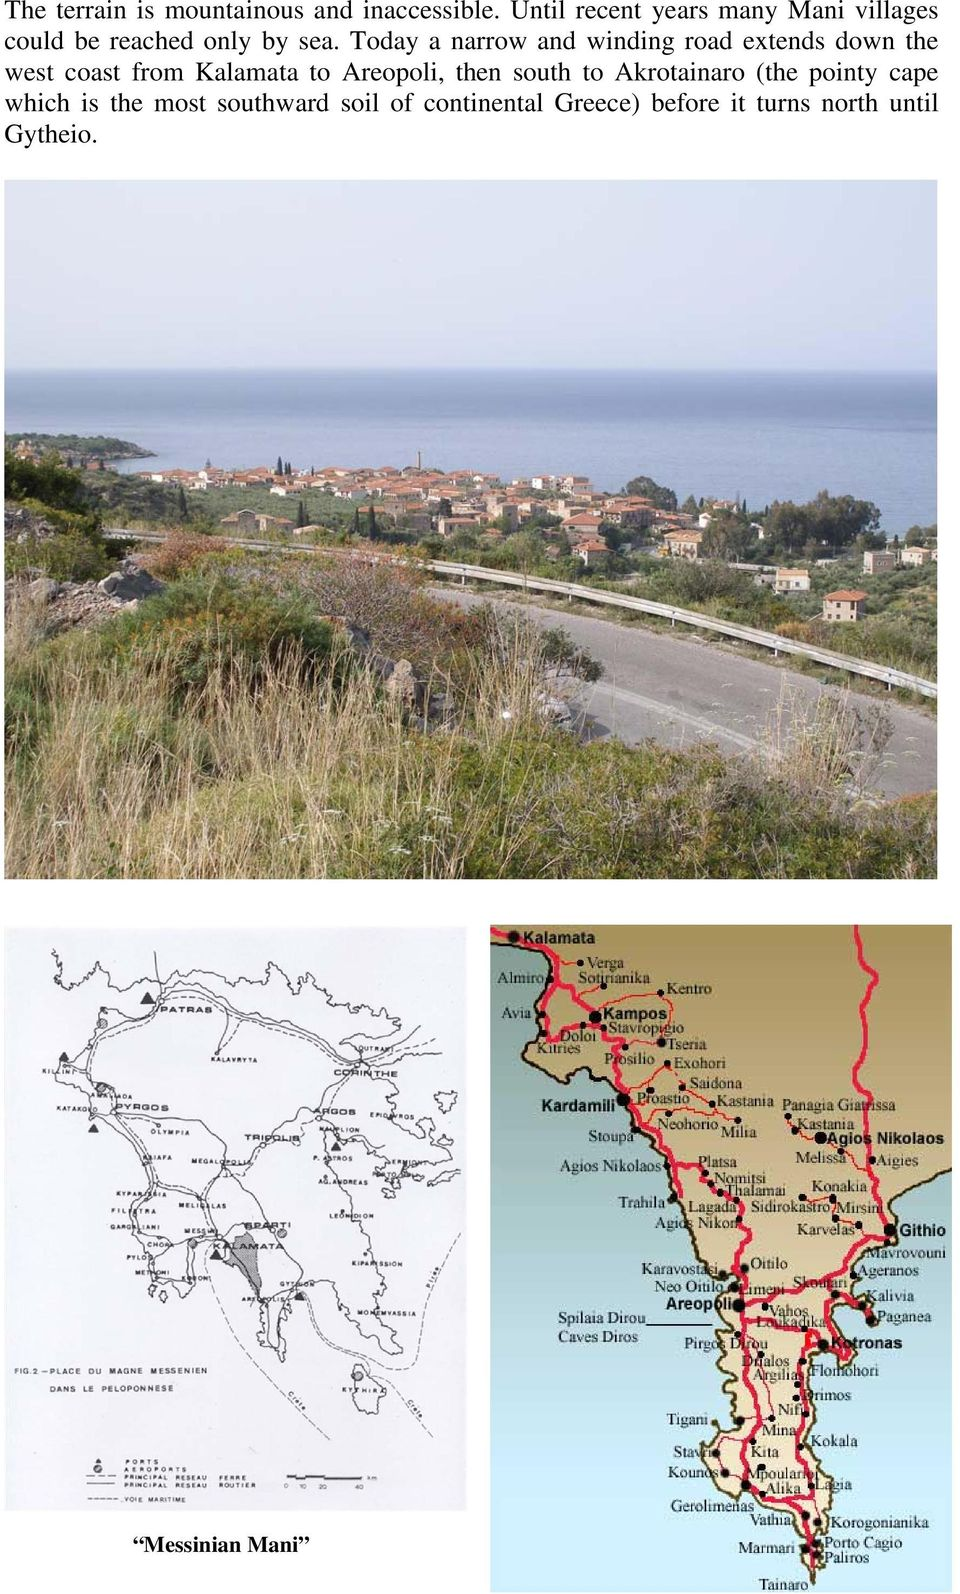 Today a narrow and winding road extends down the west coast from Kalamata to Areopoli,